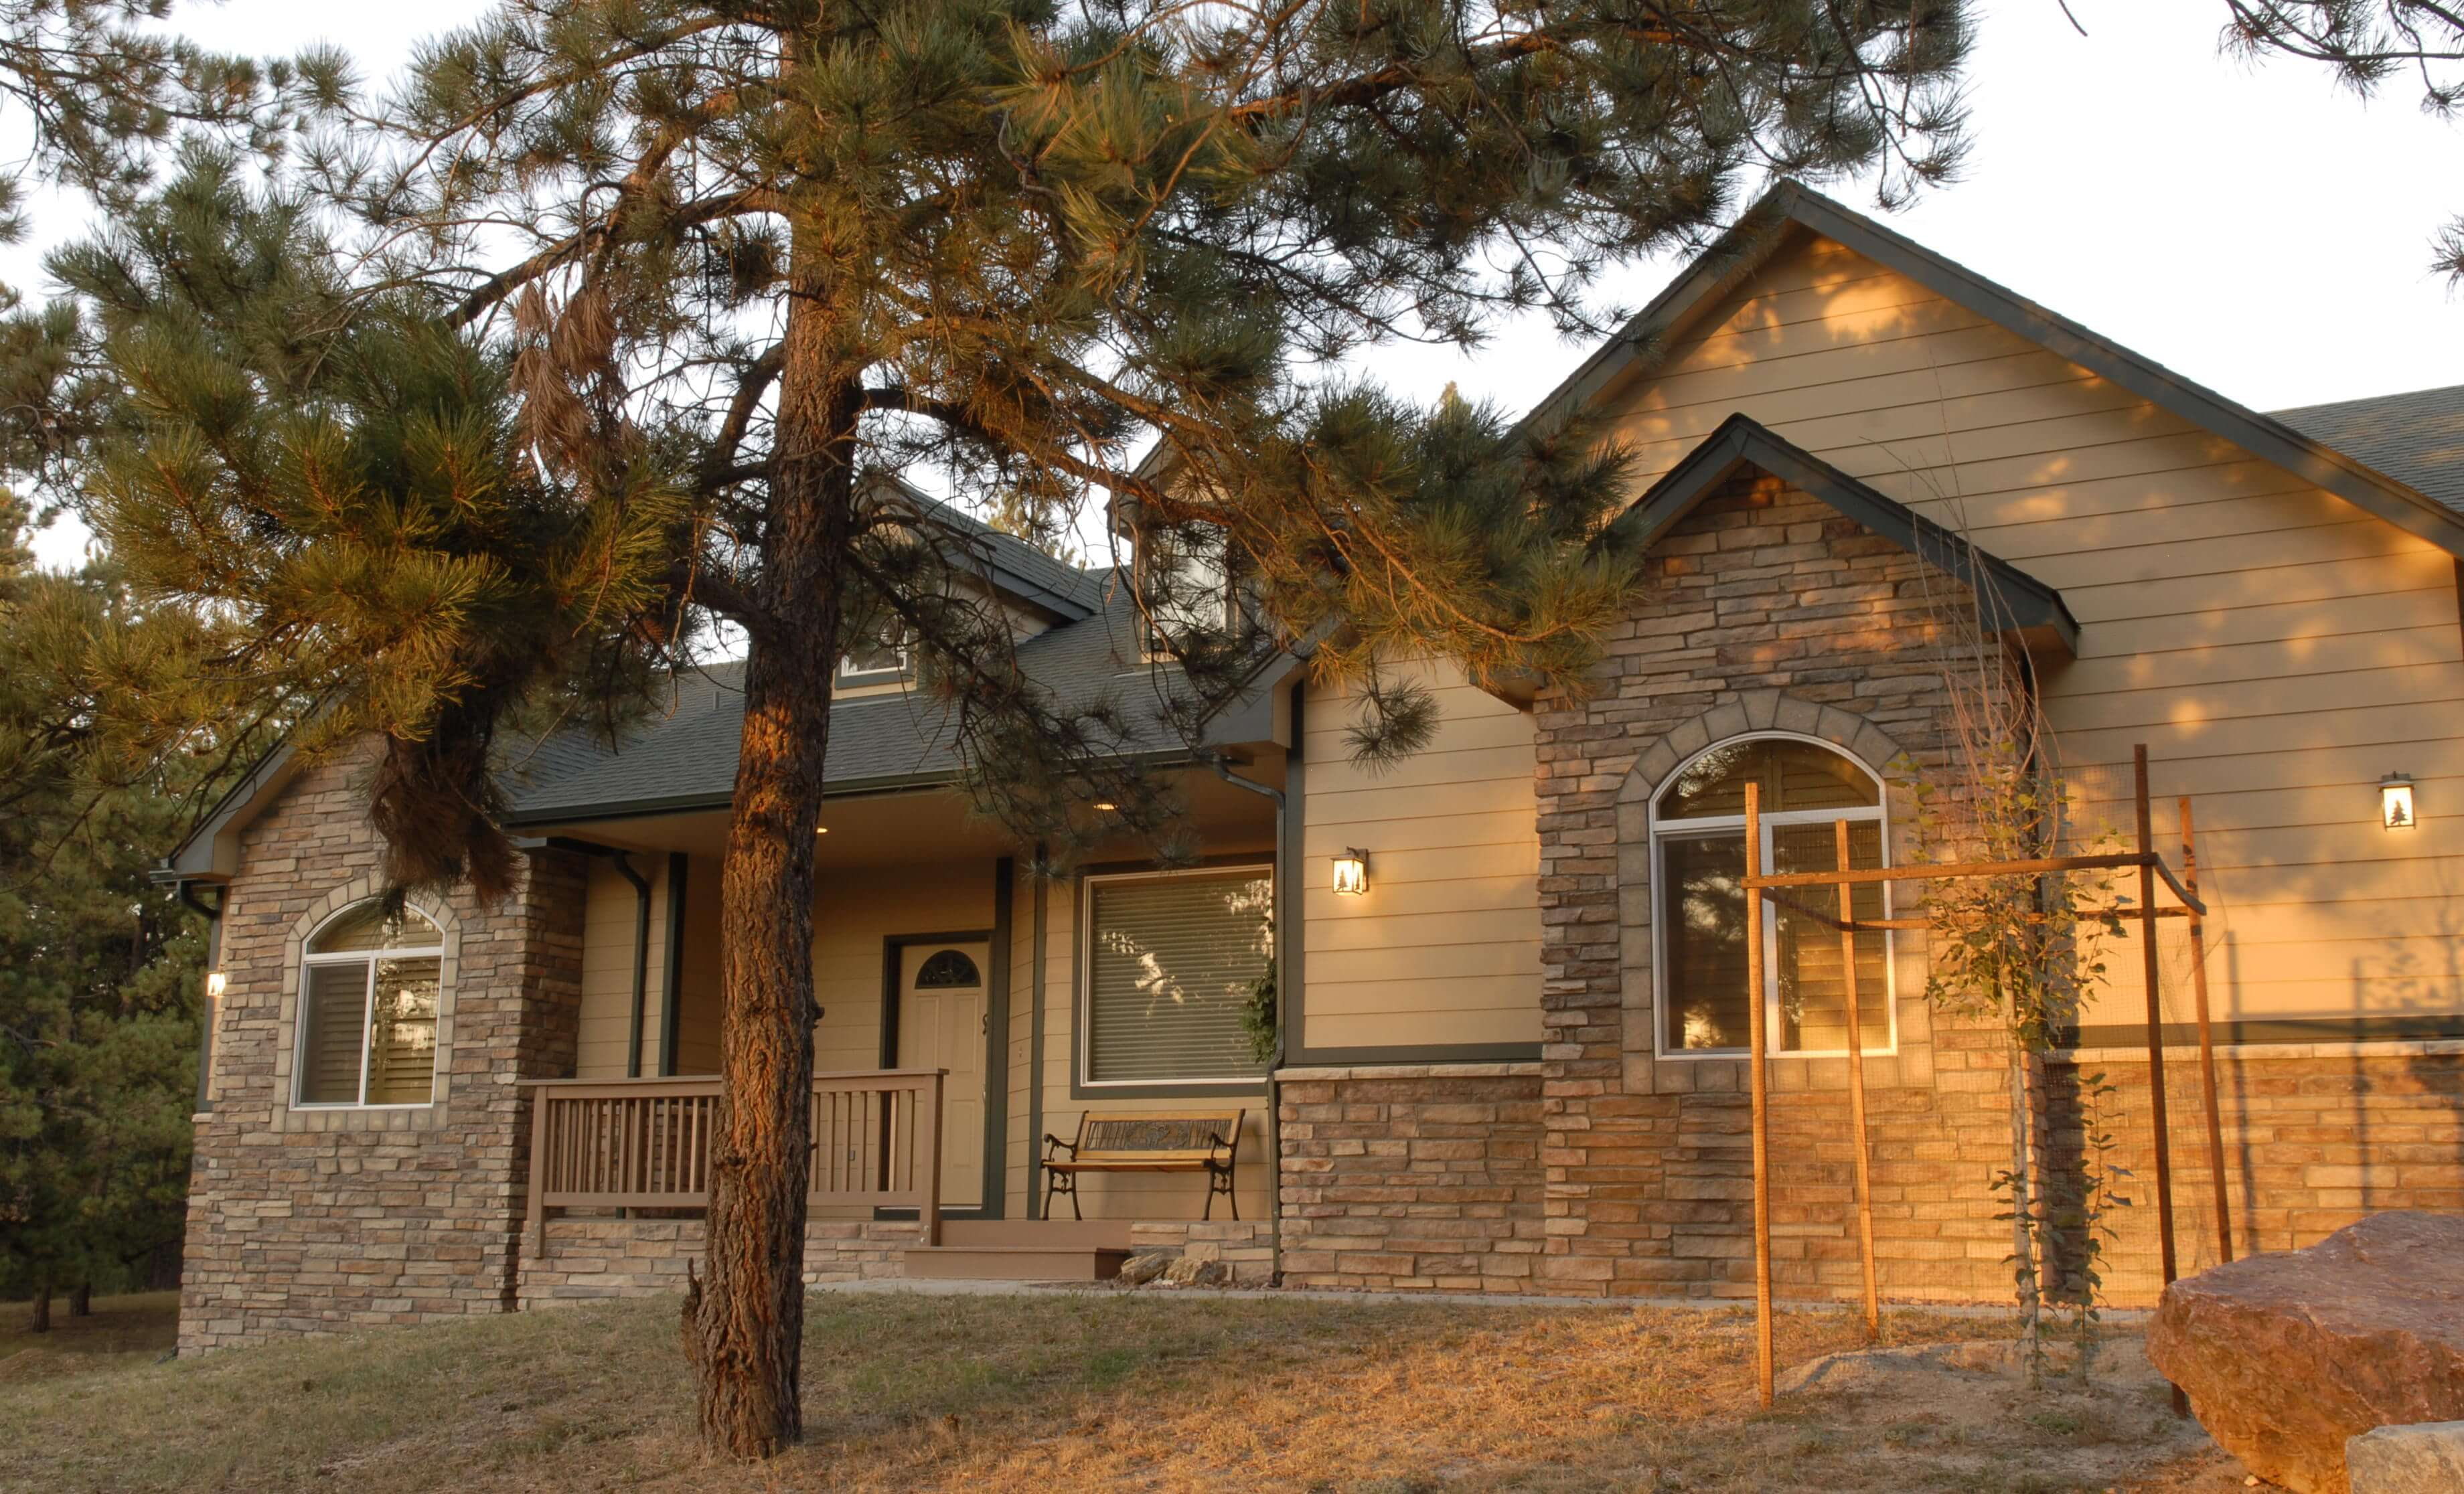 See an example of a house we built ask us about the price of your home buiding